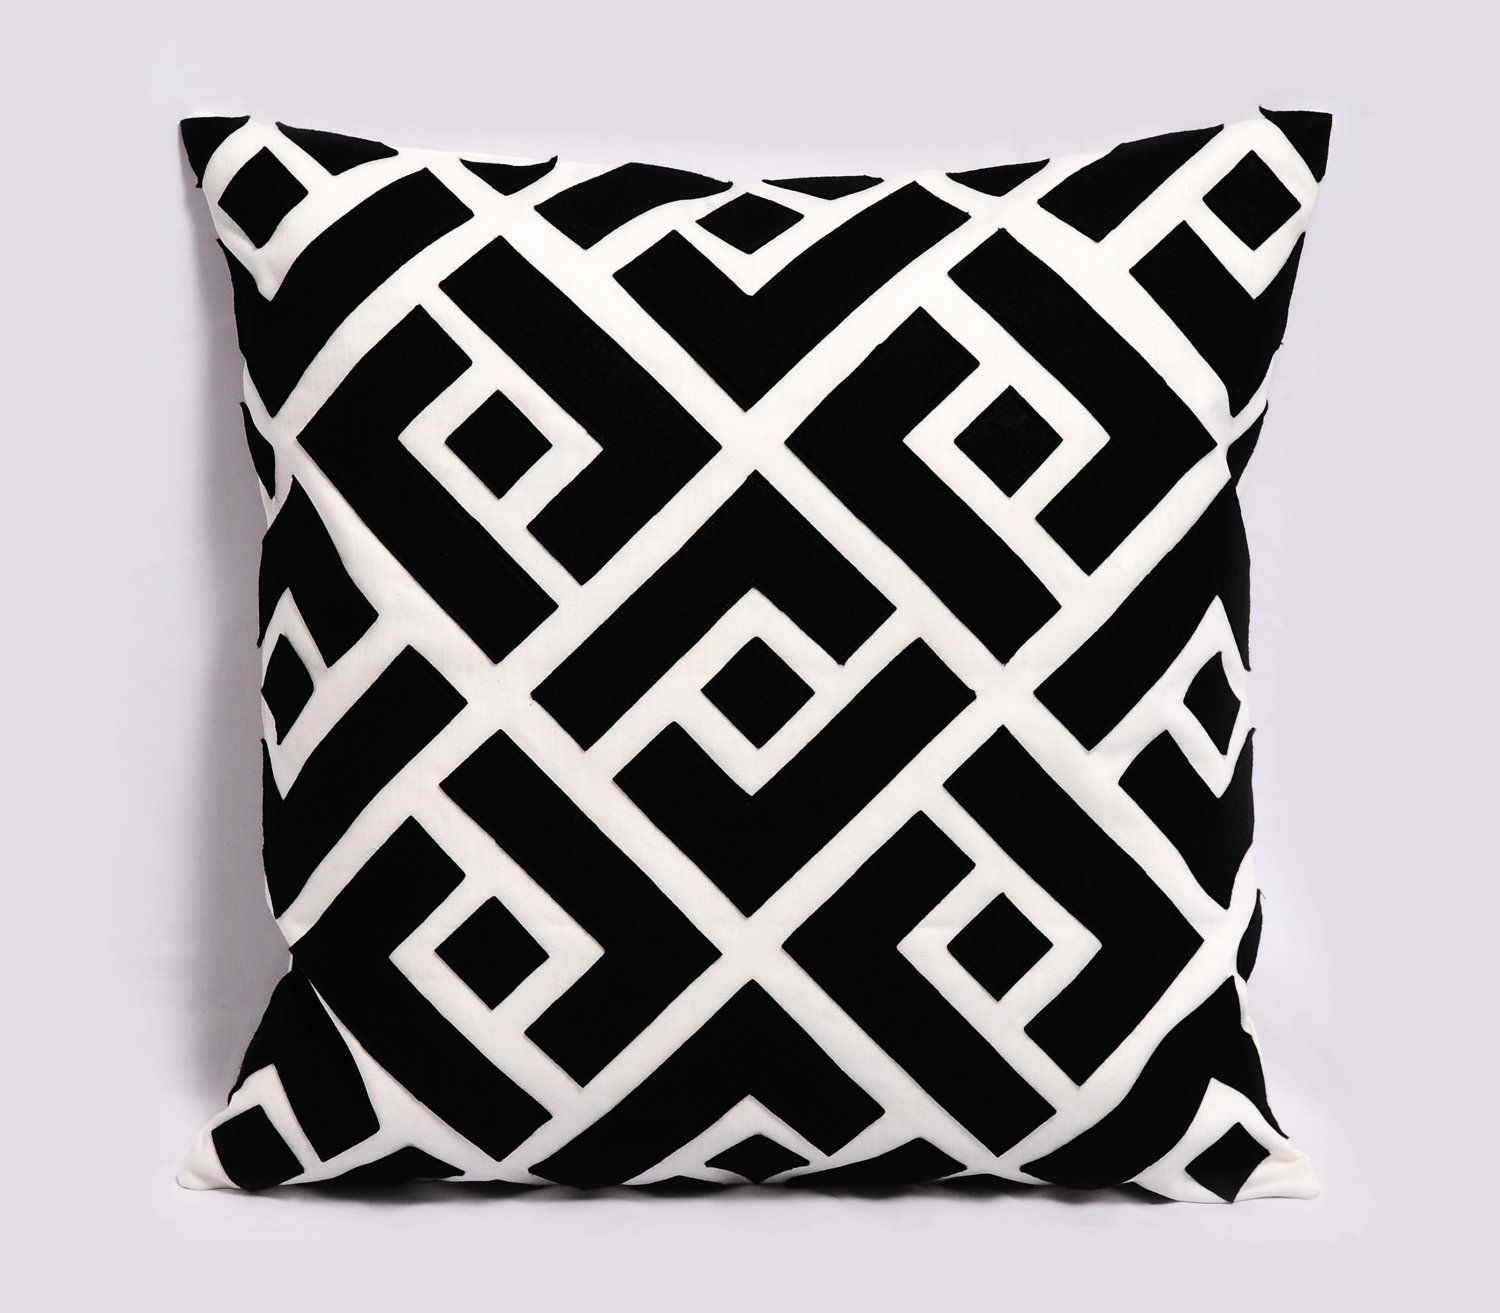 black and white pillow cover  linen felt  x inches  - black and white pillow cover  linen felt  x inches decorativepillows